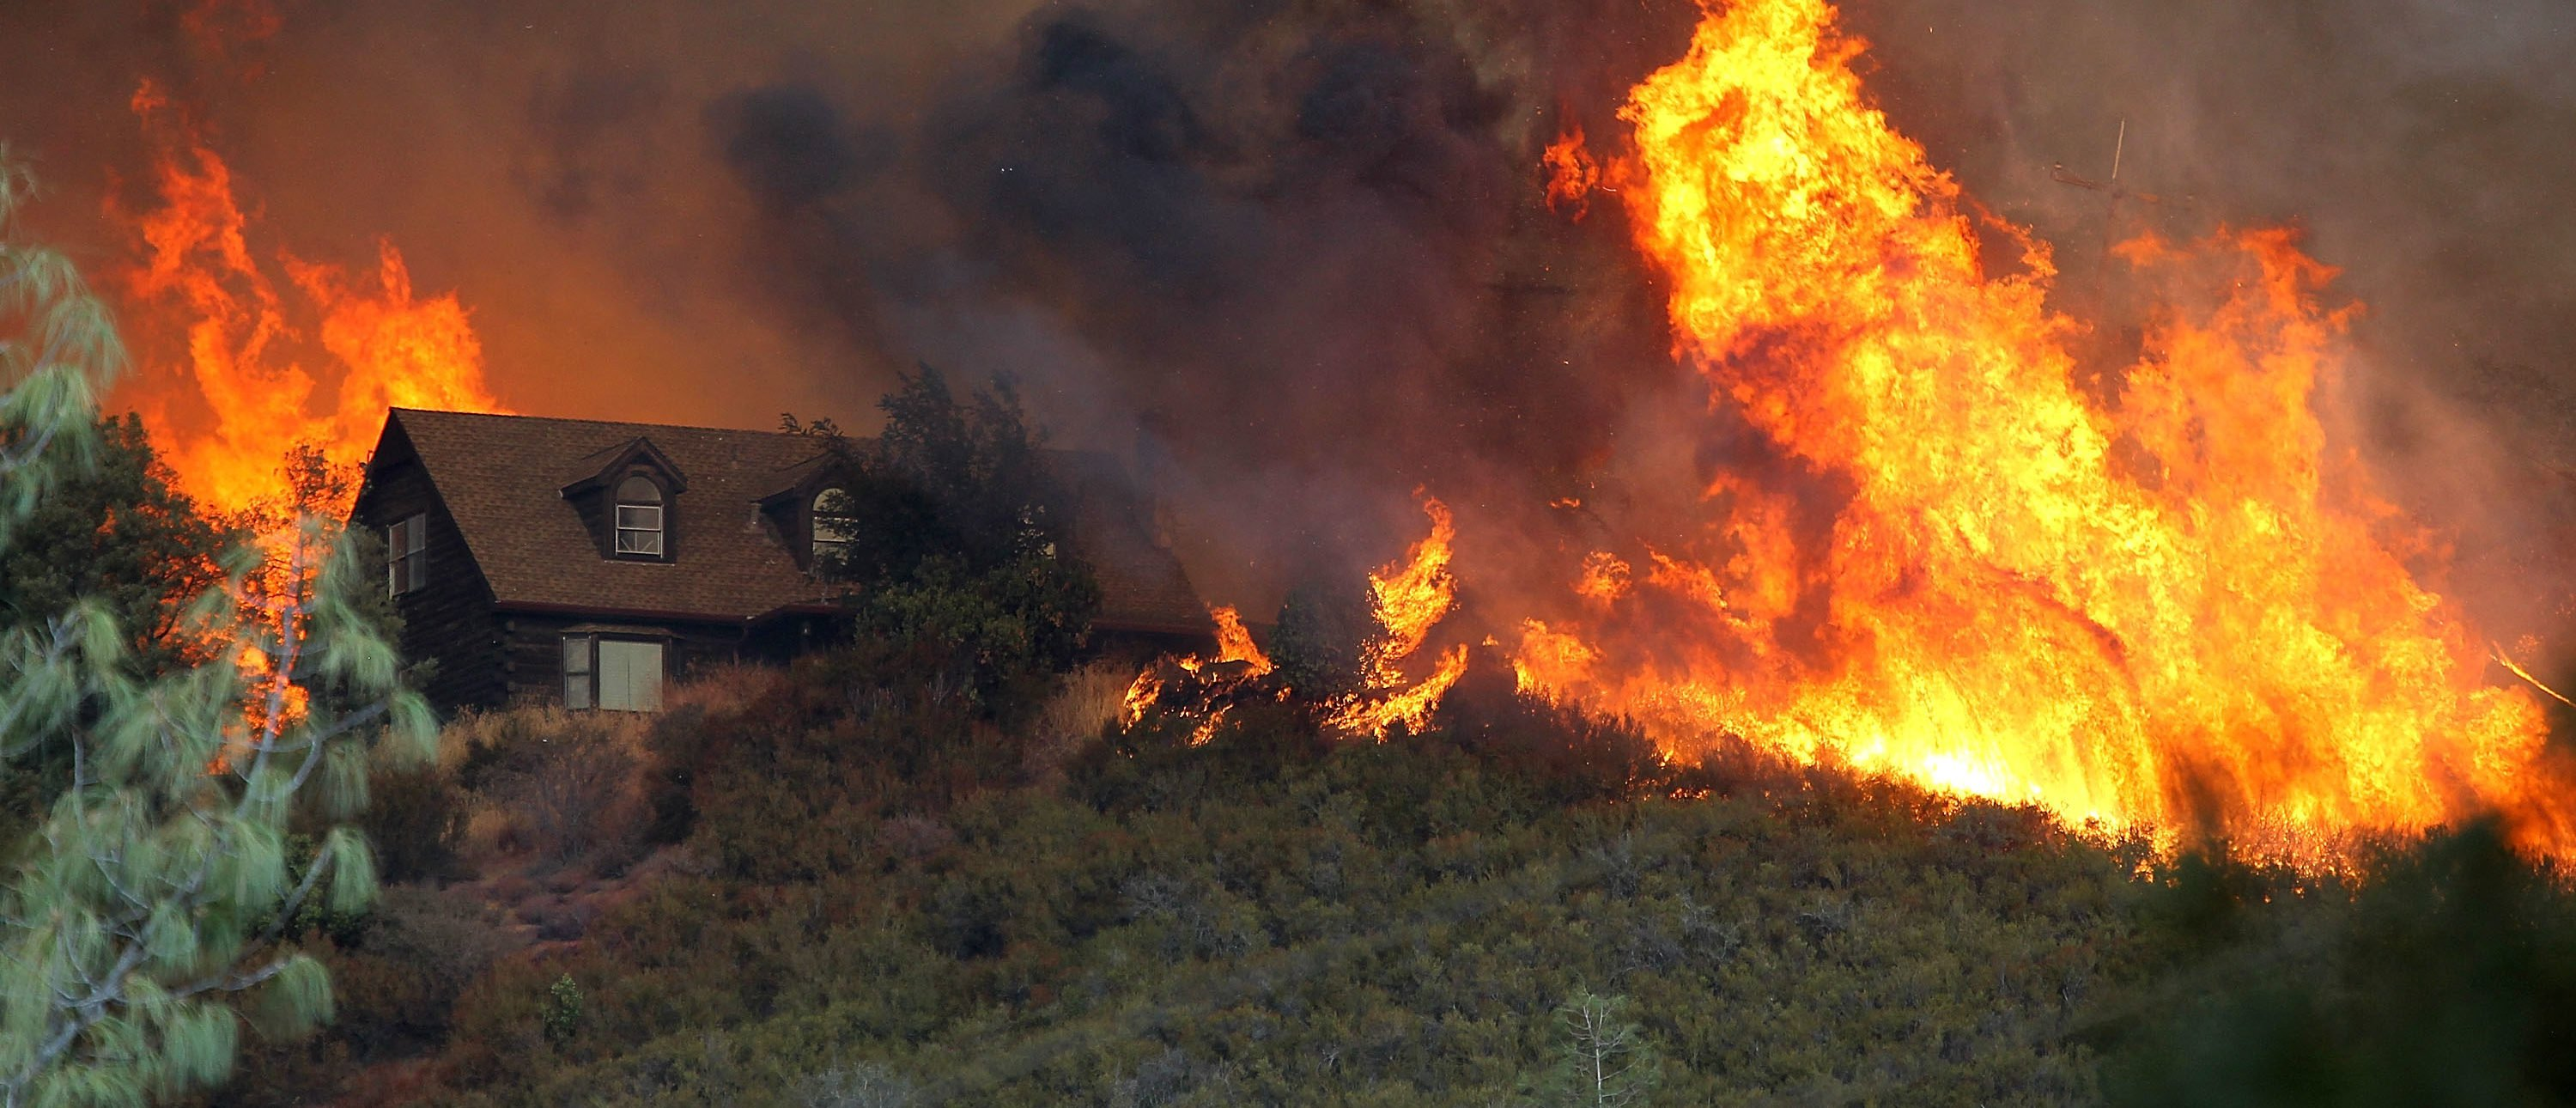 LOWER LAKE, CA - JULY 31: Flames from the Rocky Fire approach a house on July 31, 2015 in Lower Lake, California. Over 900 firefighters are battling the Rocky Fire that erupted to over 15,000 acres since it started on Wednesday afternoon. The fire is currently five percent contained and has destroyed three homes. (Photo by Justin Sullivan/Getty Images)